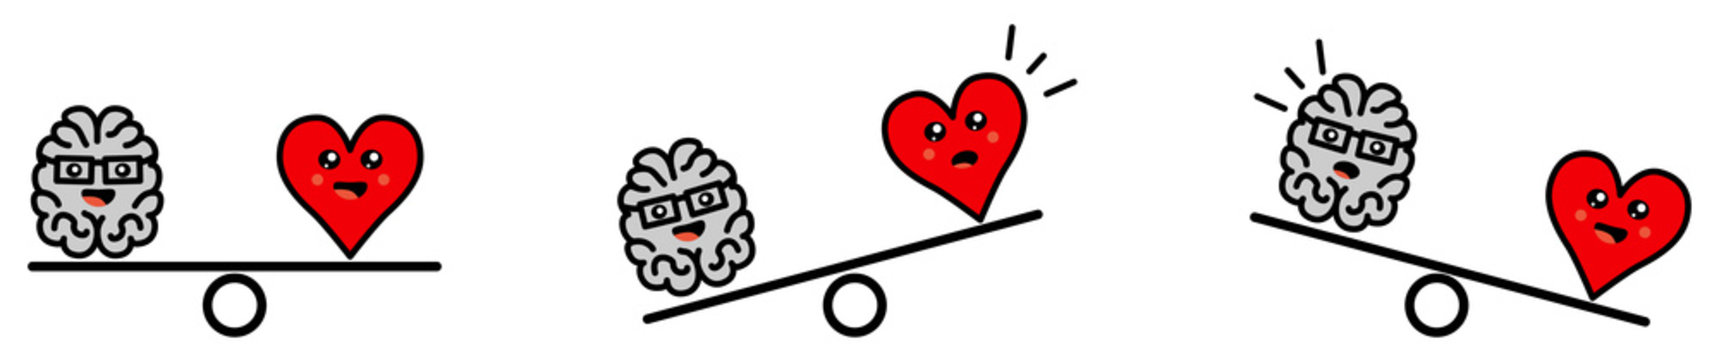 Cute Kawaii style brain and heart on weight scales, balanced or one side heavier version, emotions and rational thinking conflict concept